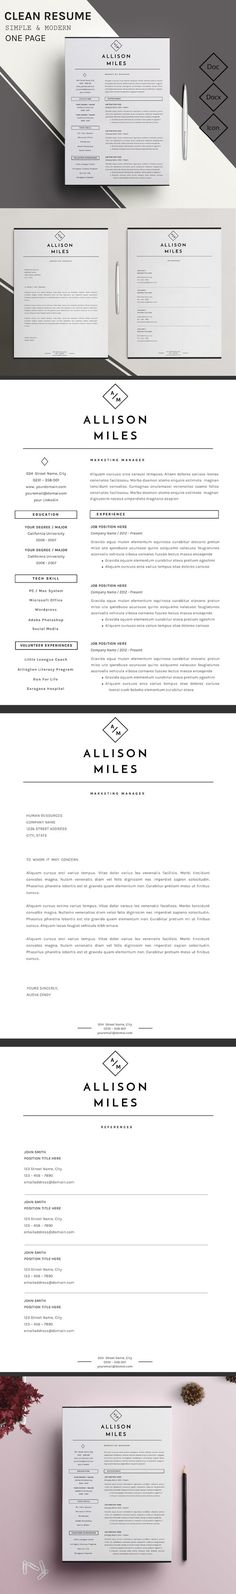 Nurse Resume   Doctor CV Resume Templates Resume Templates - cv and resume templates